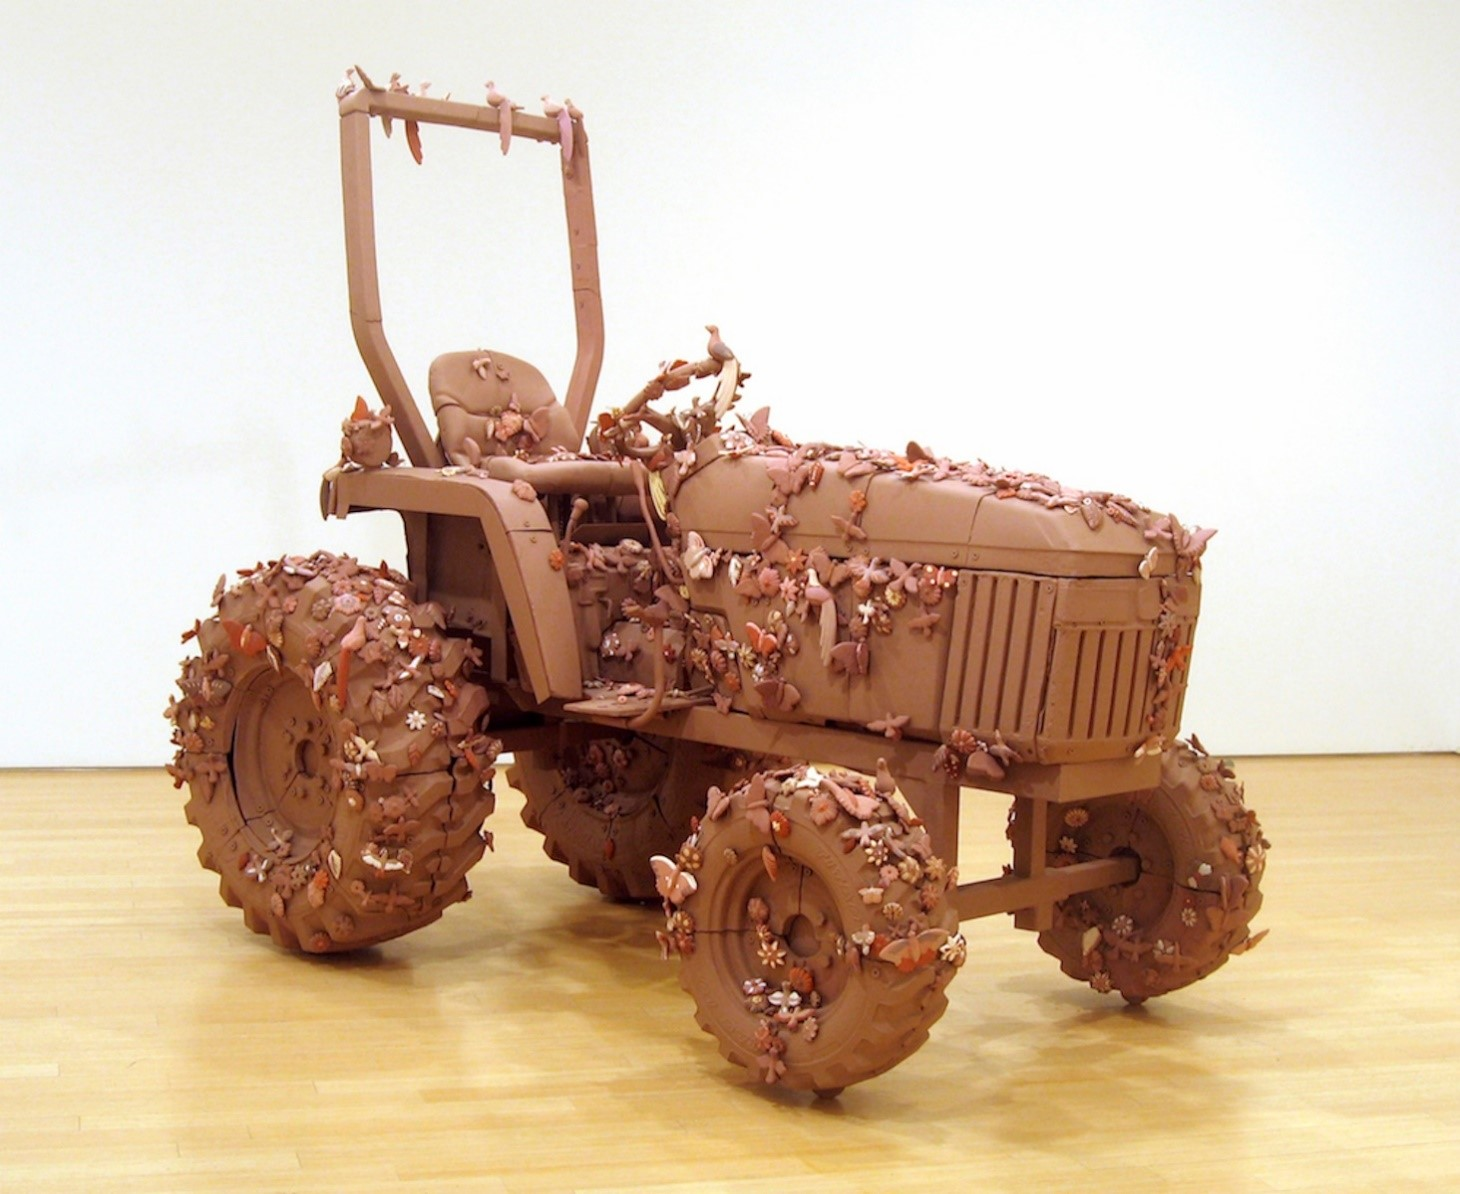 Margarita Cabrera,  Arbol de la Vida – John Deere Tractor Model #790 , 2007, clay, slip paint, latex acrylic and metal hardware, 100 x 60 x 96 inches, Photo Courtesy of the Artist